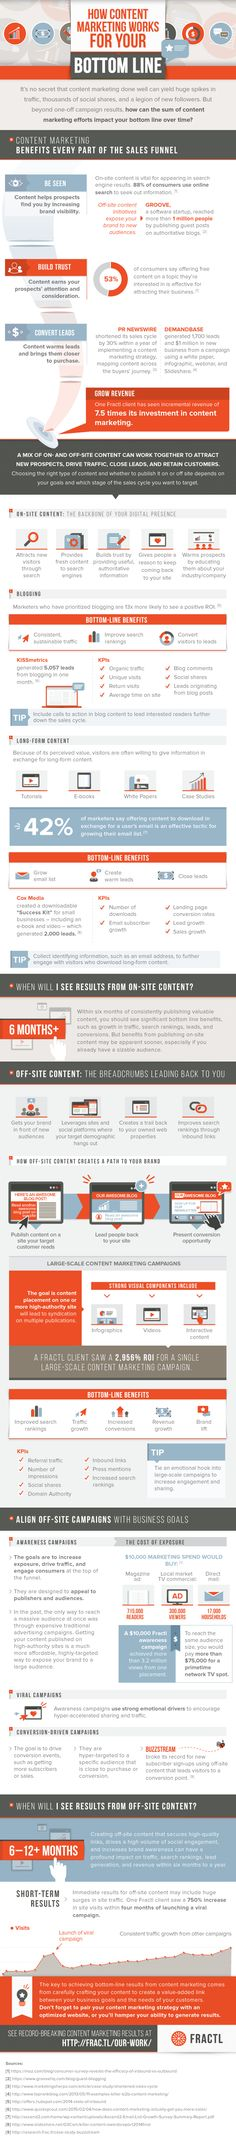 How Content Marketing Works For Your Bottom Line [Infographic] | Social Media Today